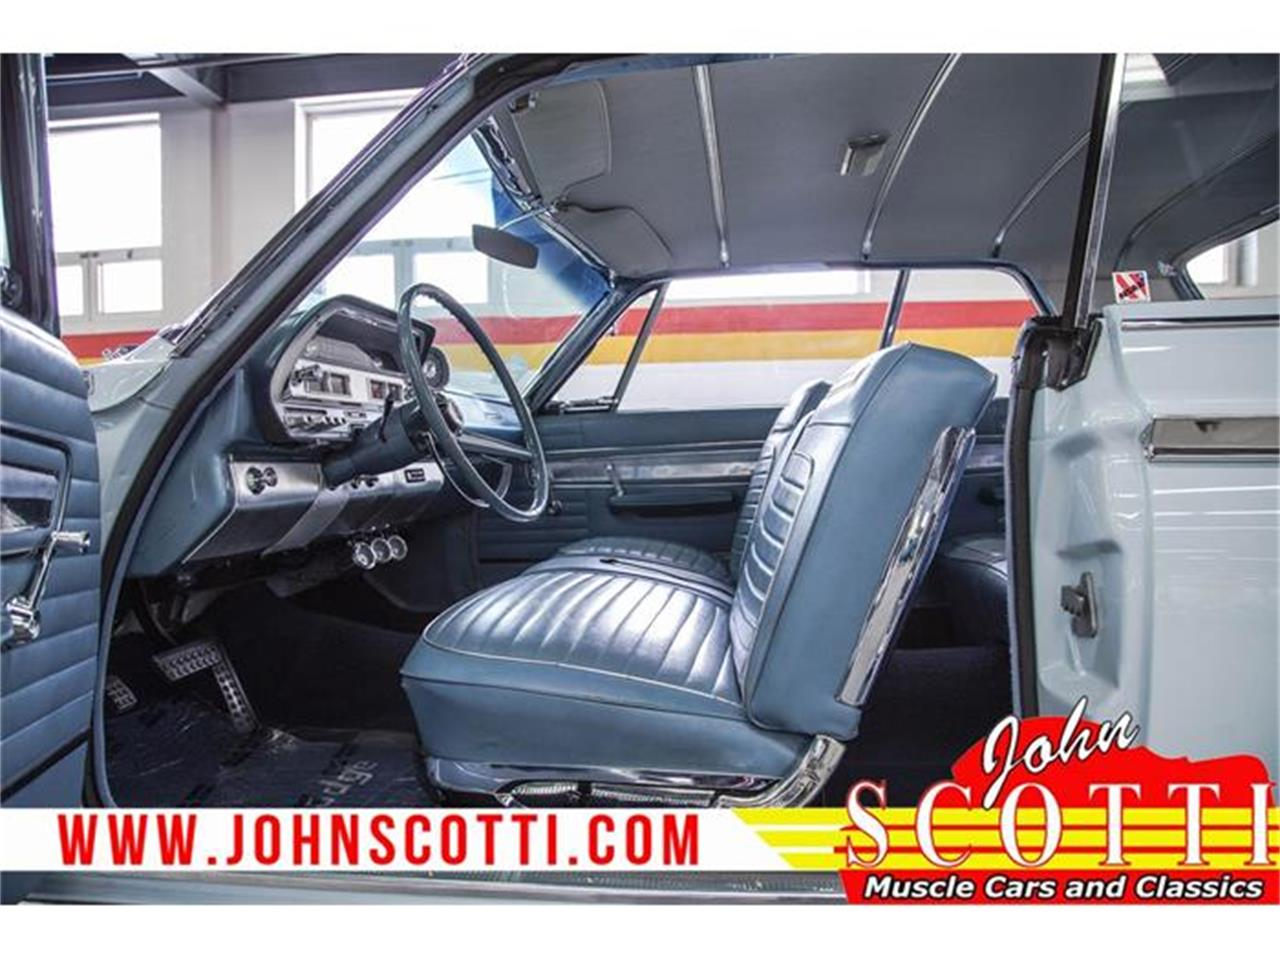 Large Picture of '63 Dodge Polara Offered by John Scotti Classic Cars - GA0M